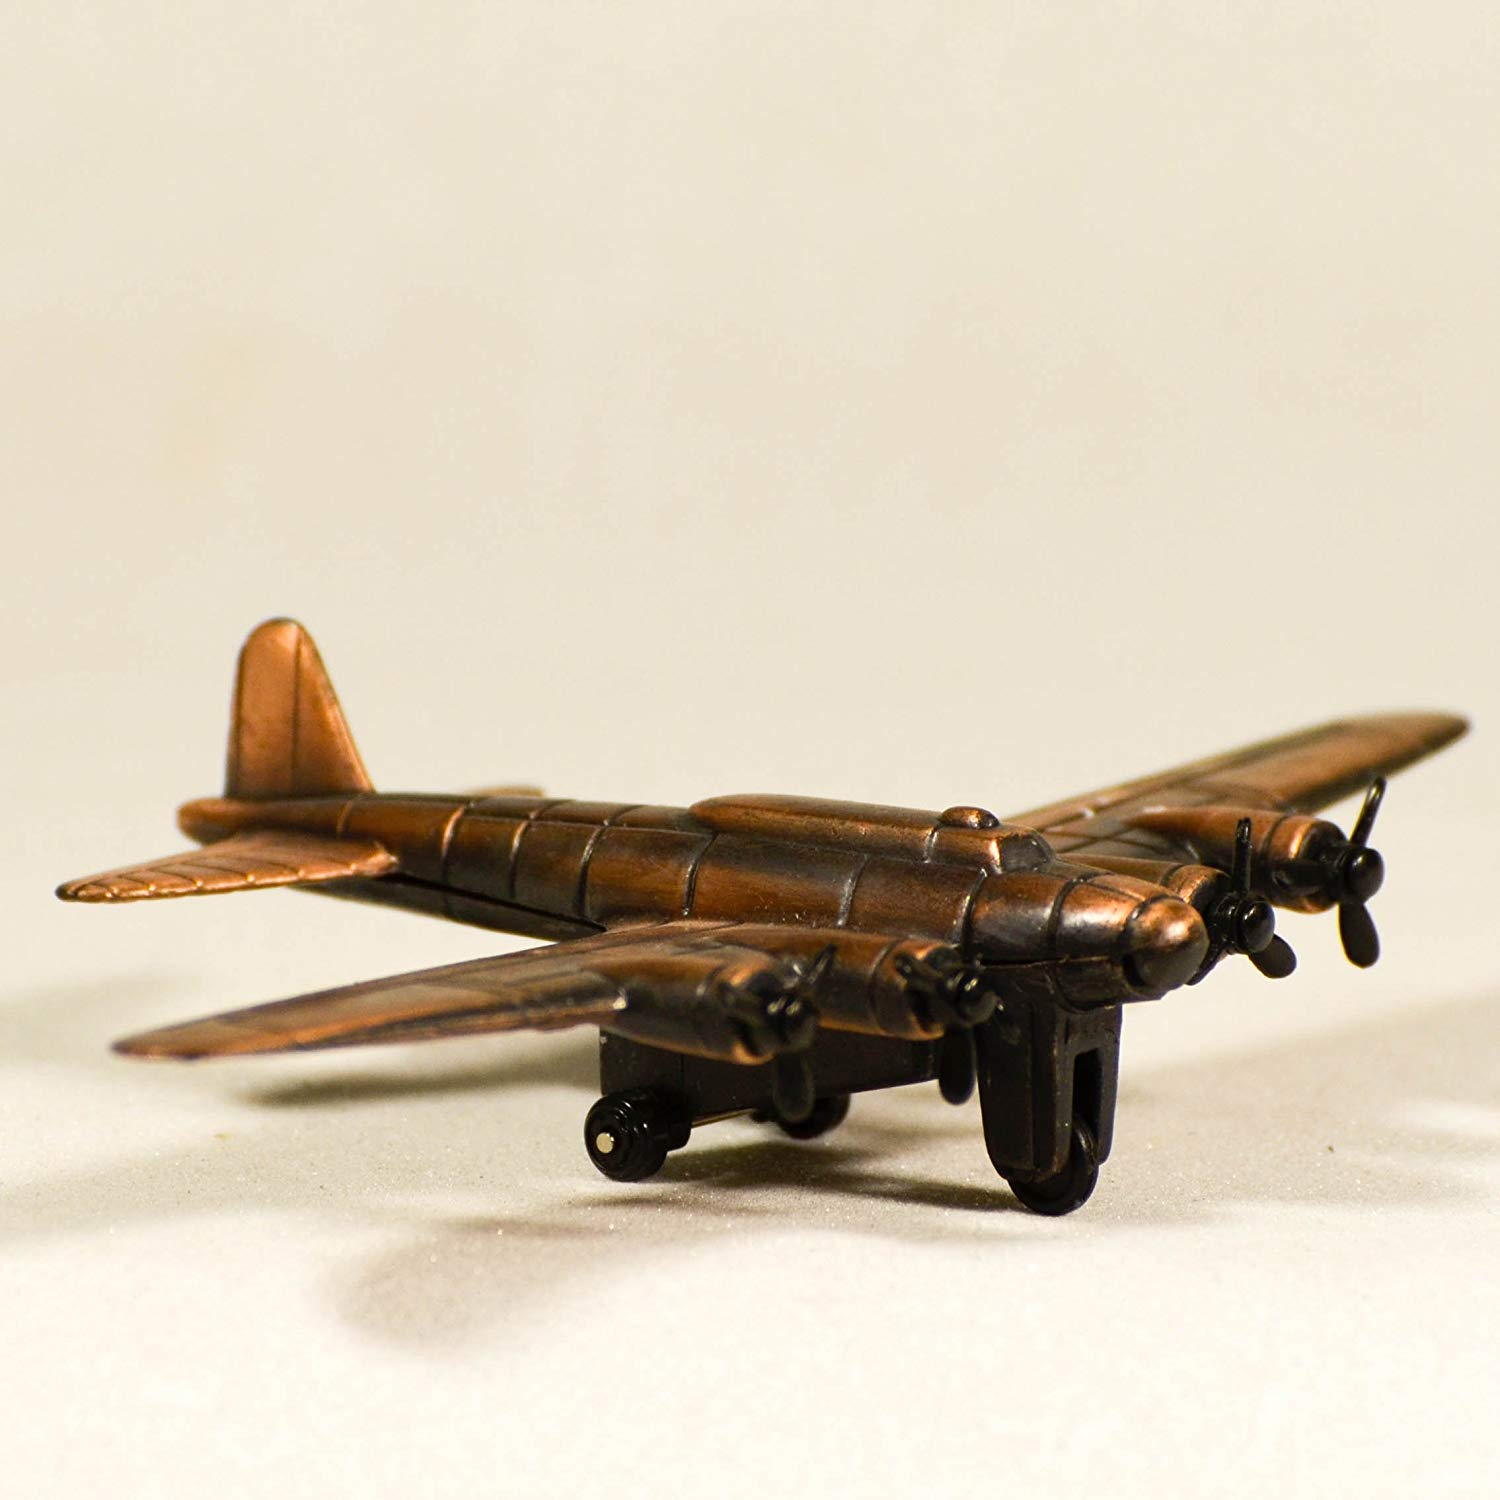 Metal Die Cast B-17 Flying Fortress Airplane Sharpener Retro Plane Miniature Model Antique Finished